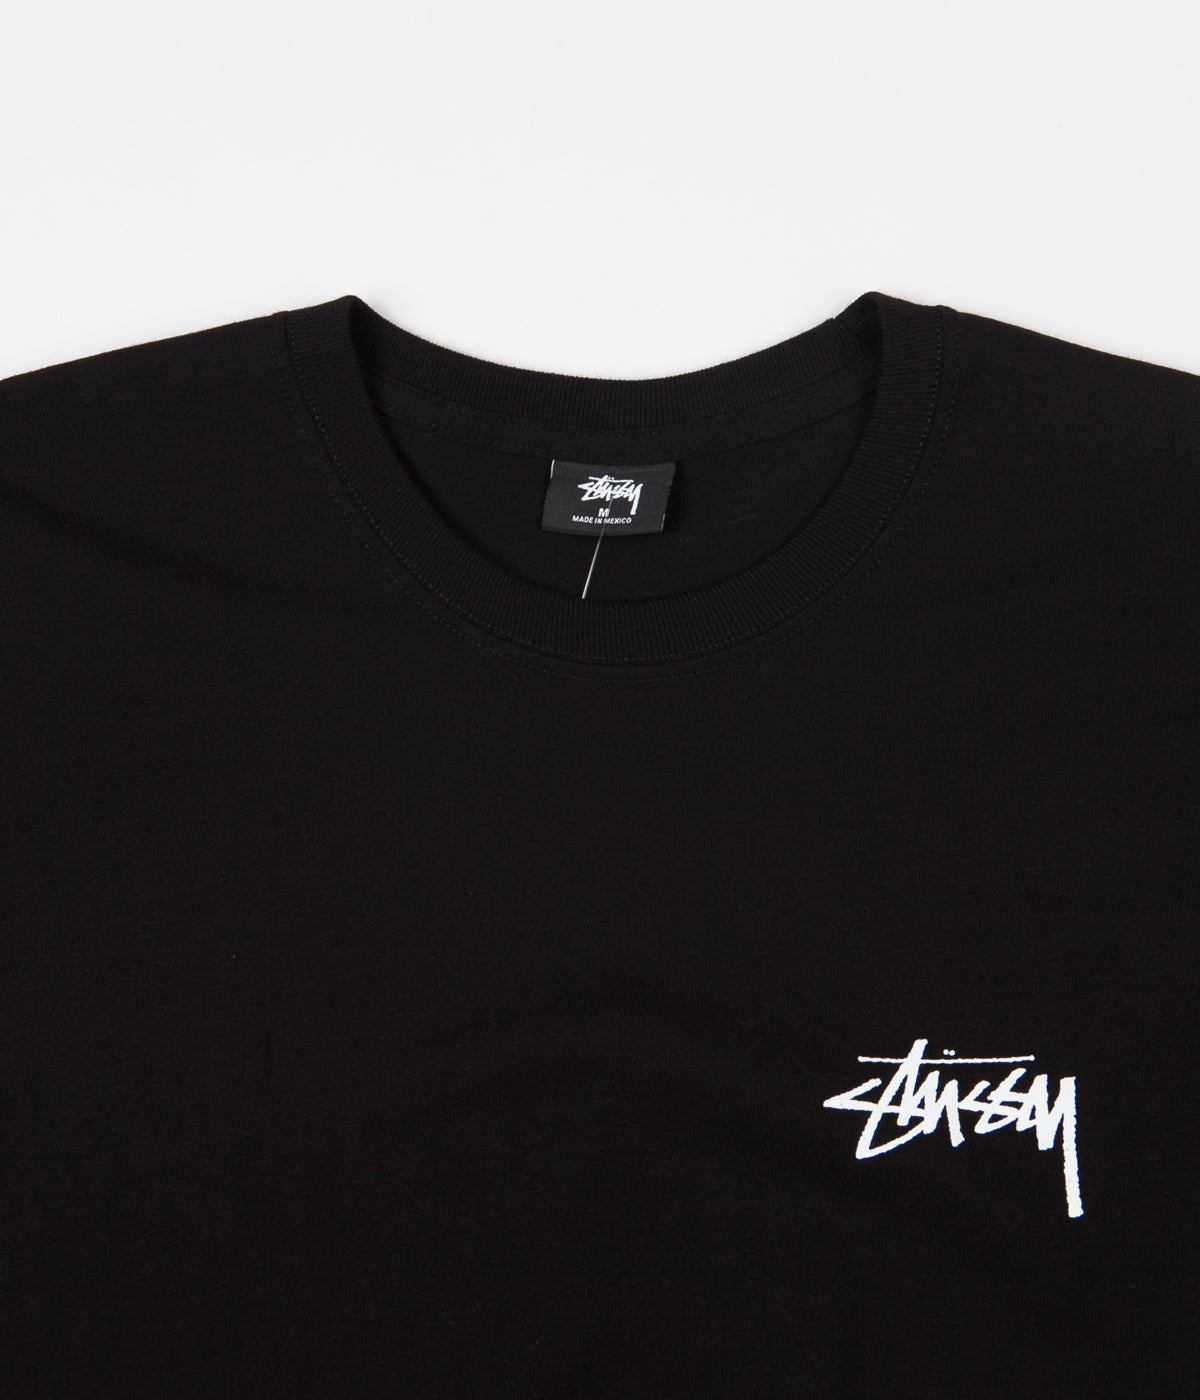 Stussy Say It Loud T-Shirt - Black